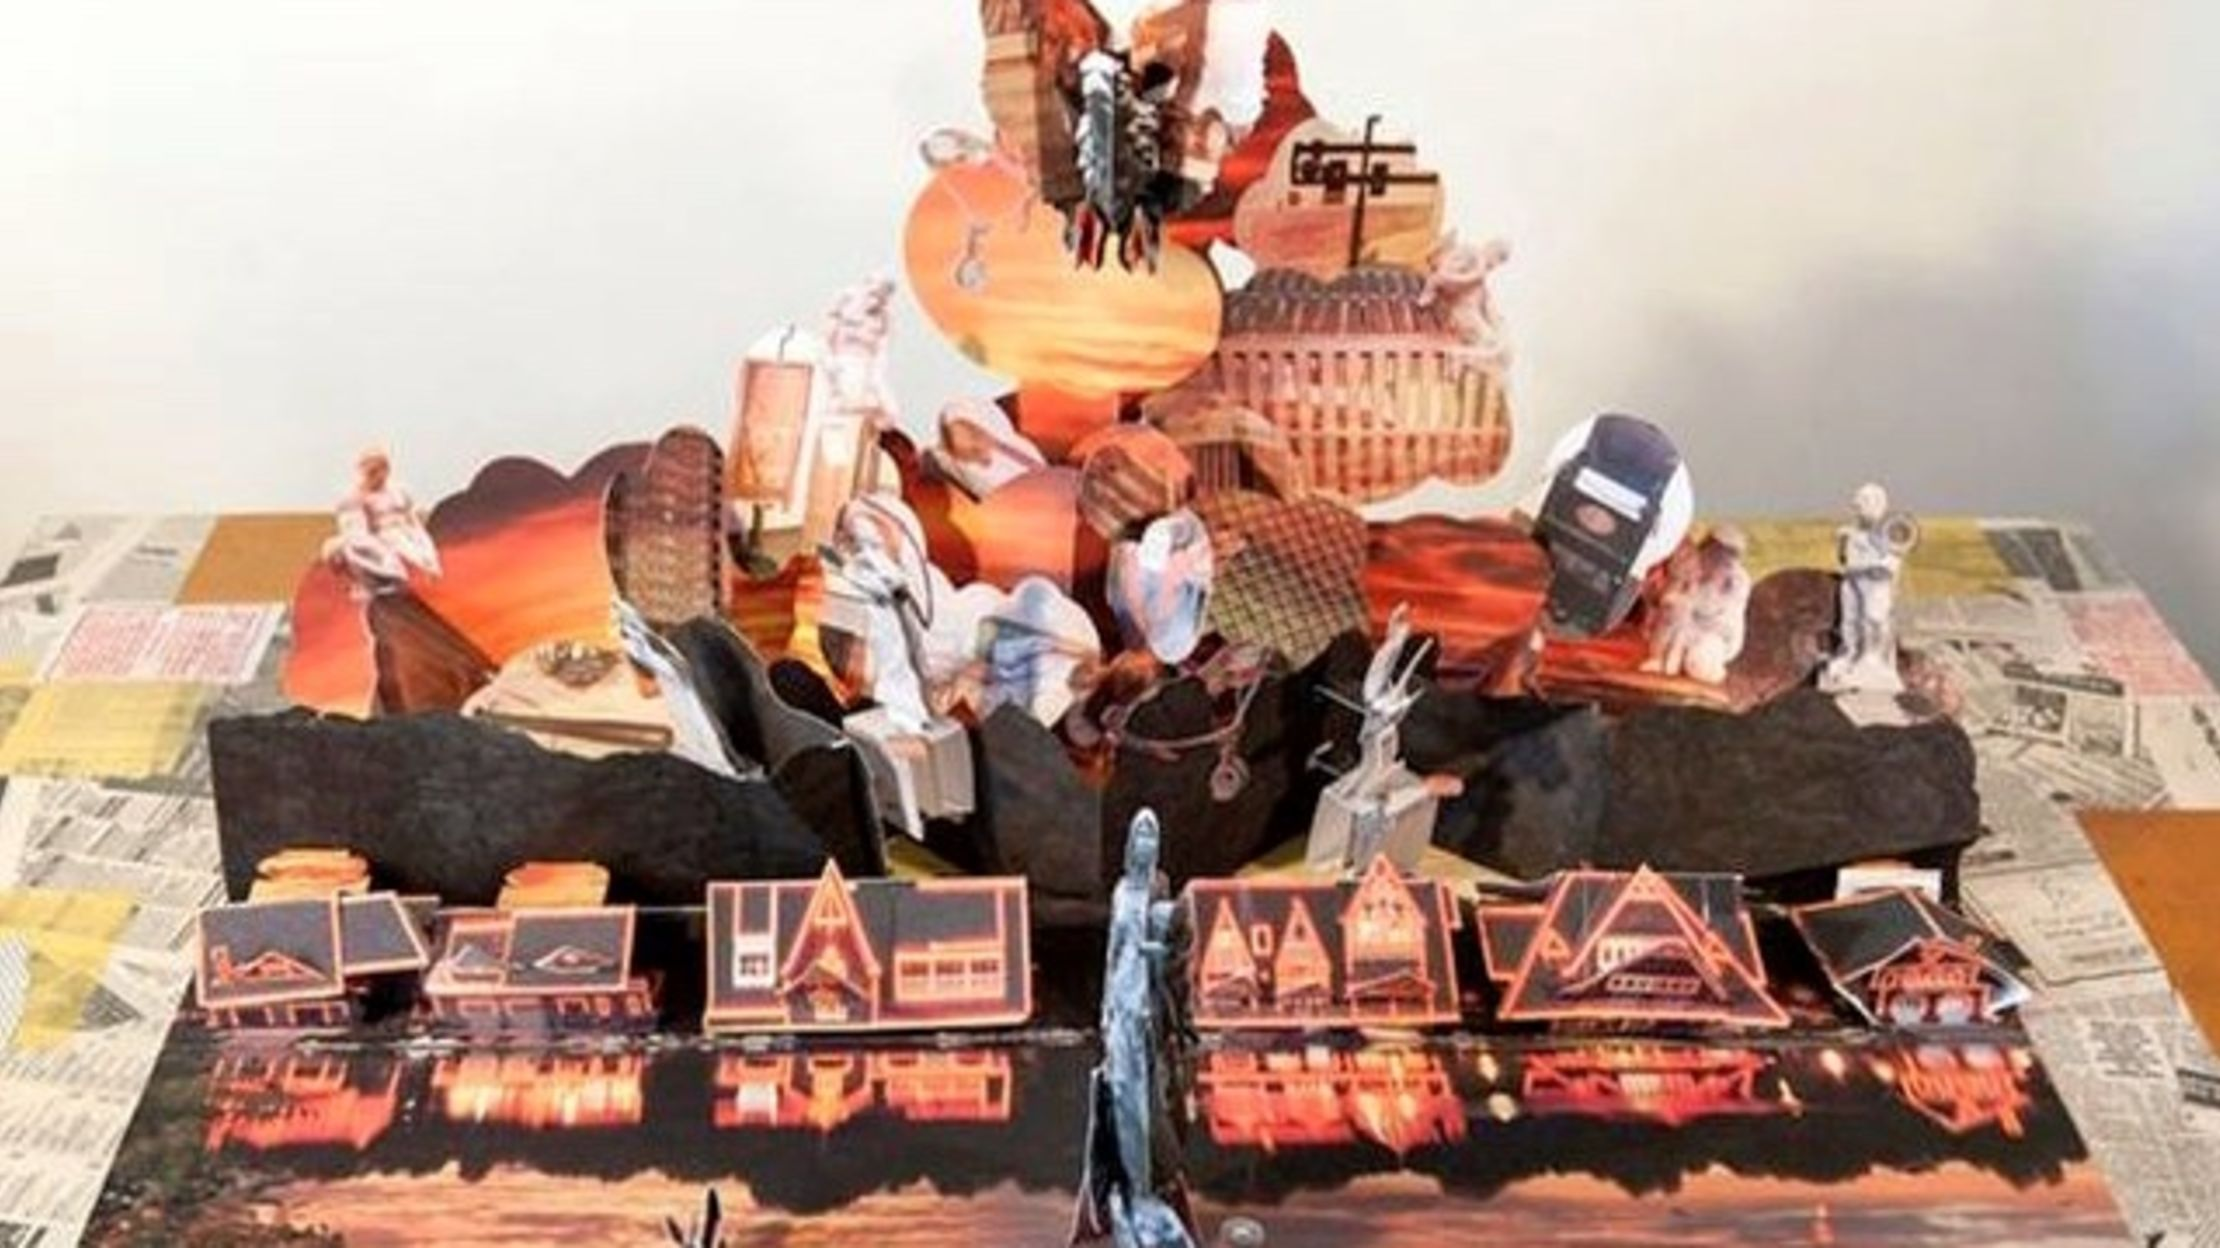 10 Pop Up Books That Are Works of Art   Mental Floss